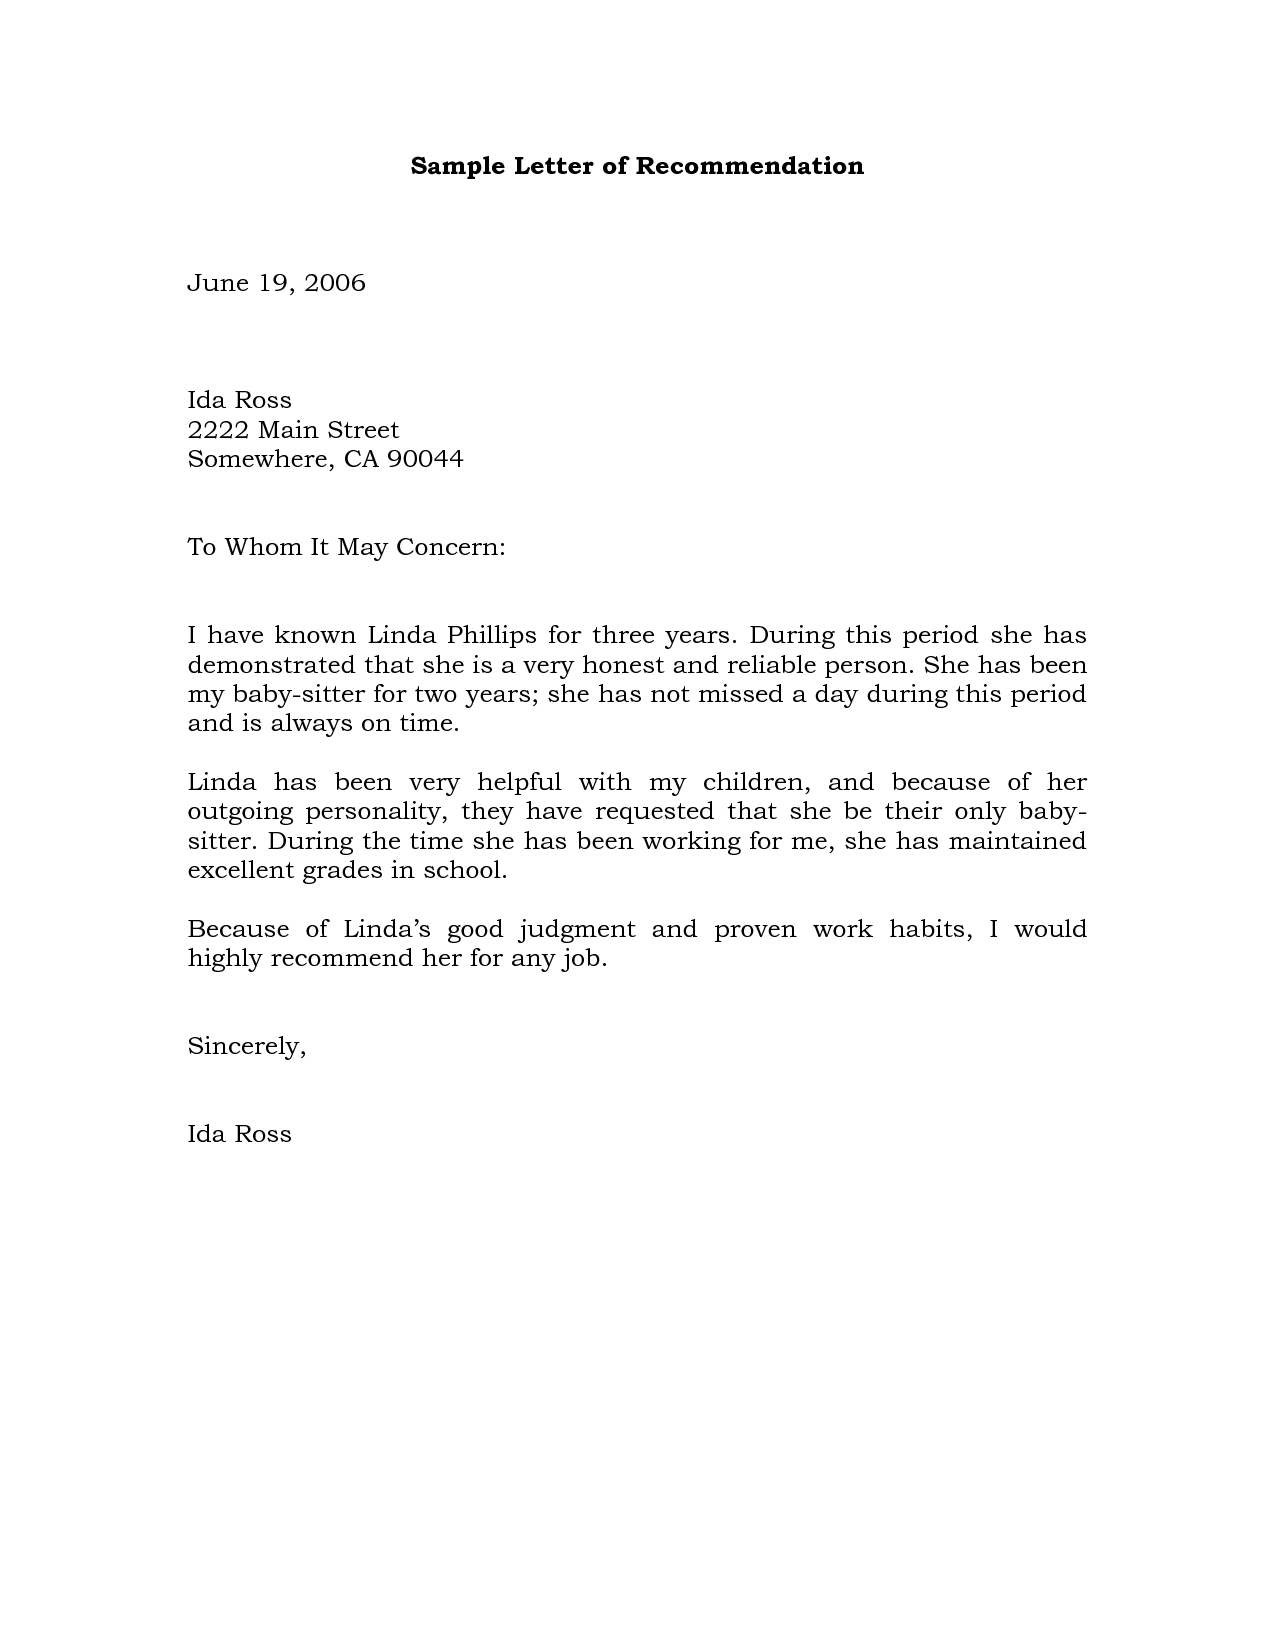 Personal Reference Letter Template Word - Sample Re Mendation Letter Example Projects to Try